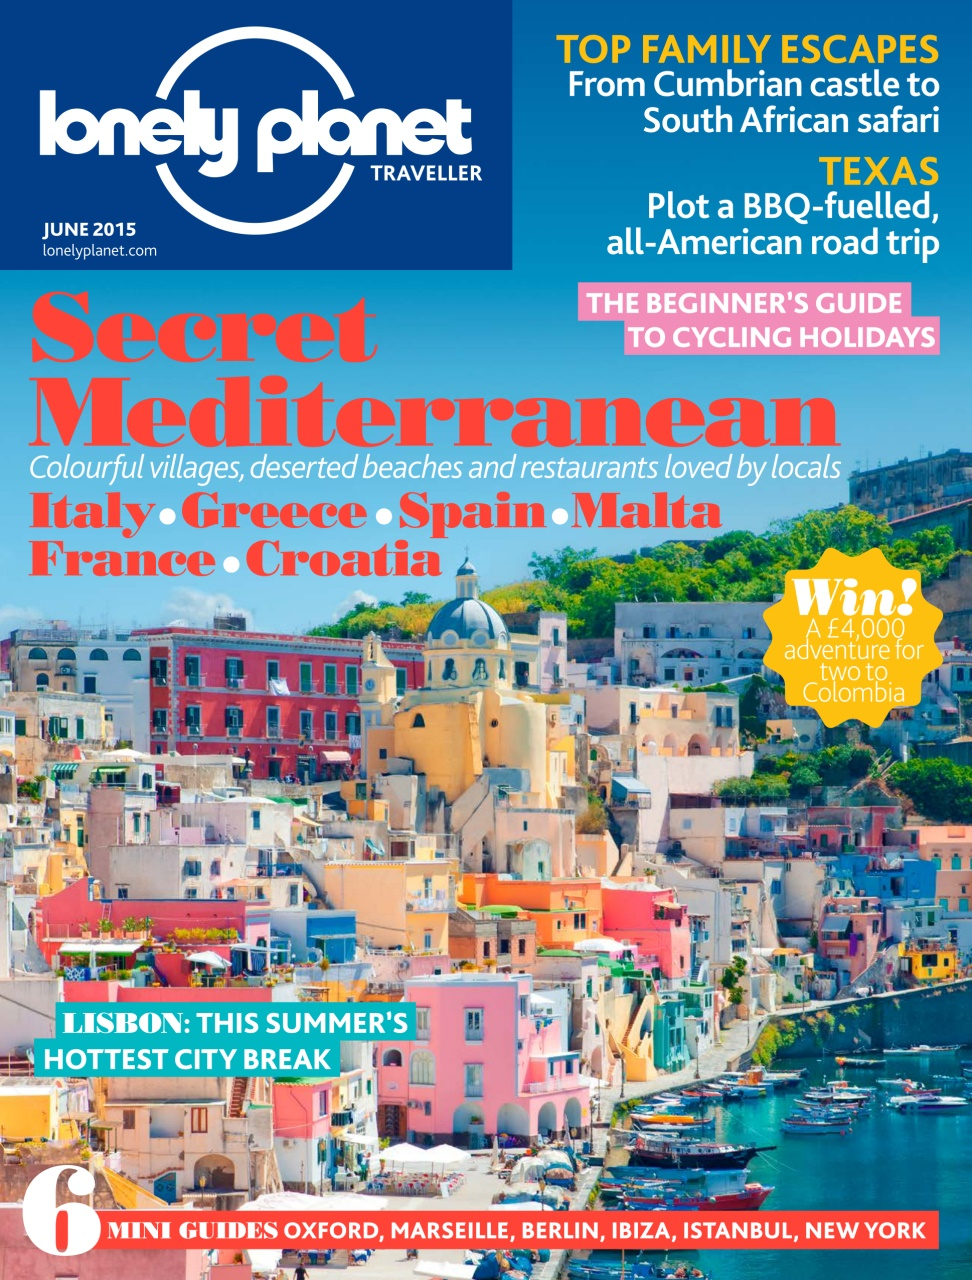 Lonely Planet Traveller - June 2015 free download